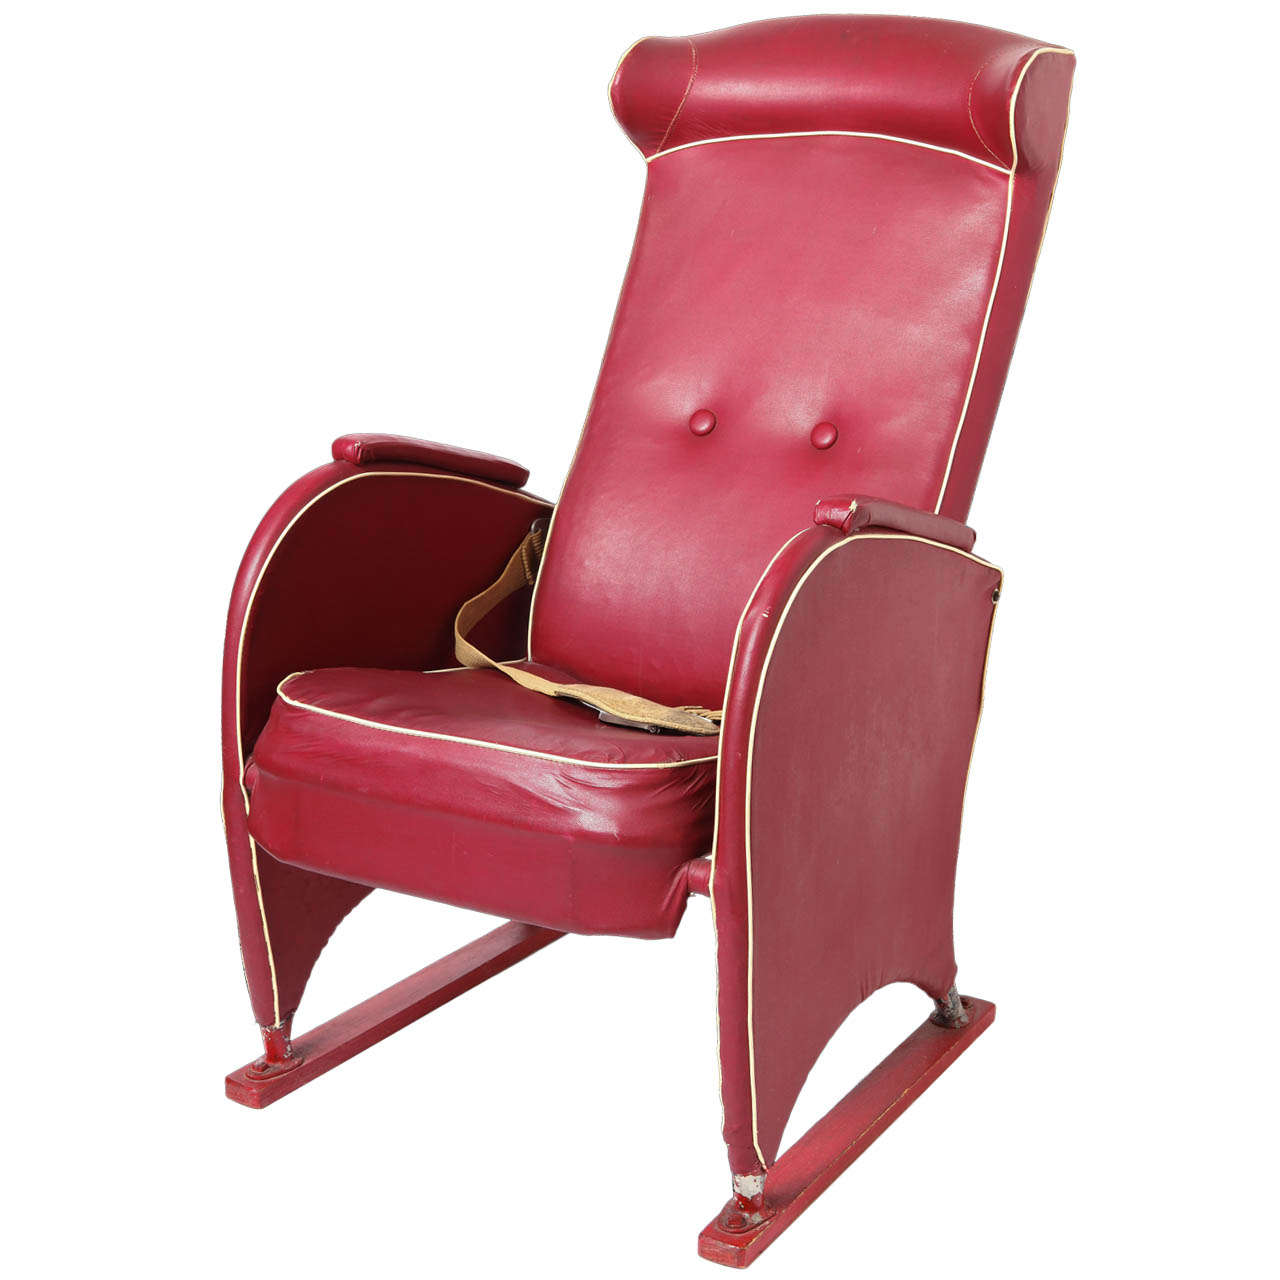 Modernist air france art deco first cabin seat circa 1940 for sale at 1stdibs for Air deco